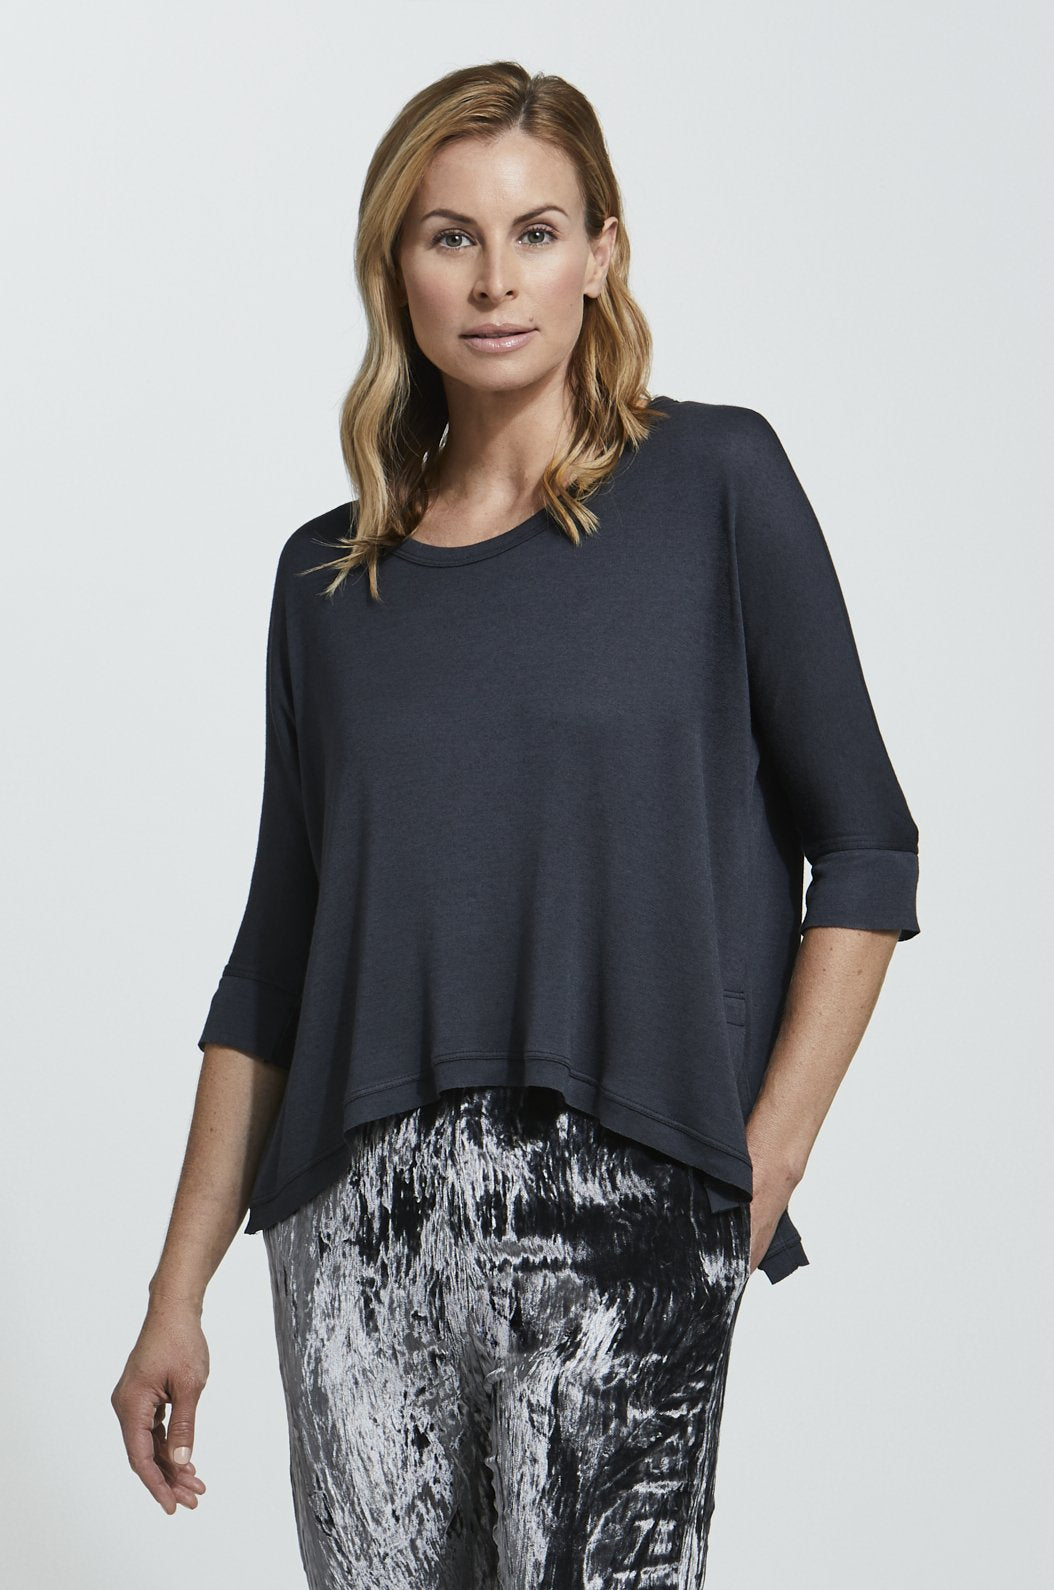 ROYL NYC | Luxury loungewear - LIGHTWEIGHT CASHMERE BLEND ASYMMETRIC T | ROYL